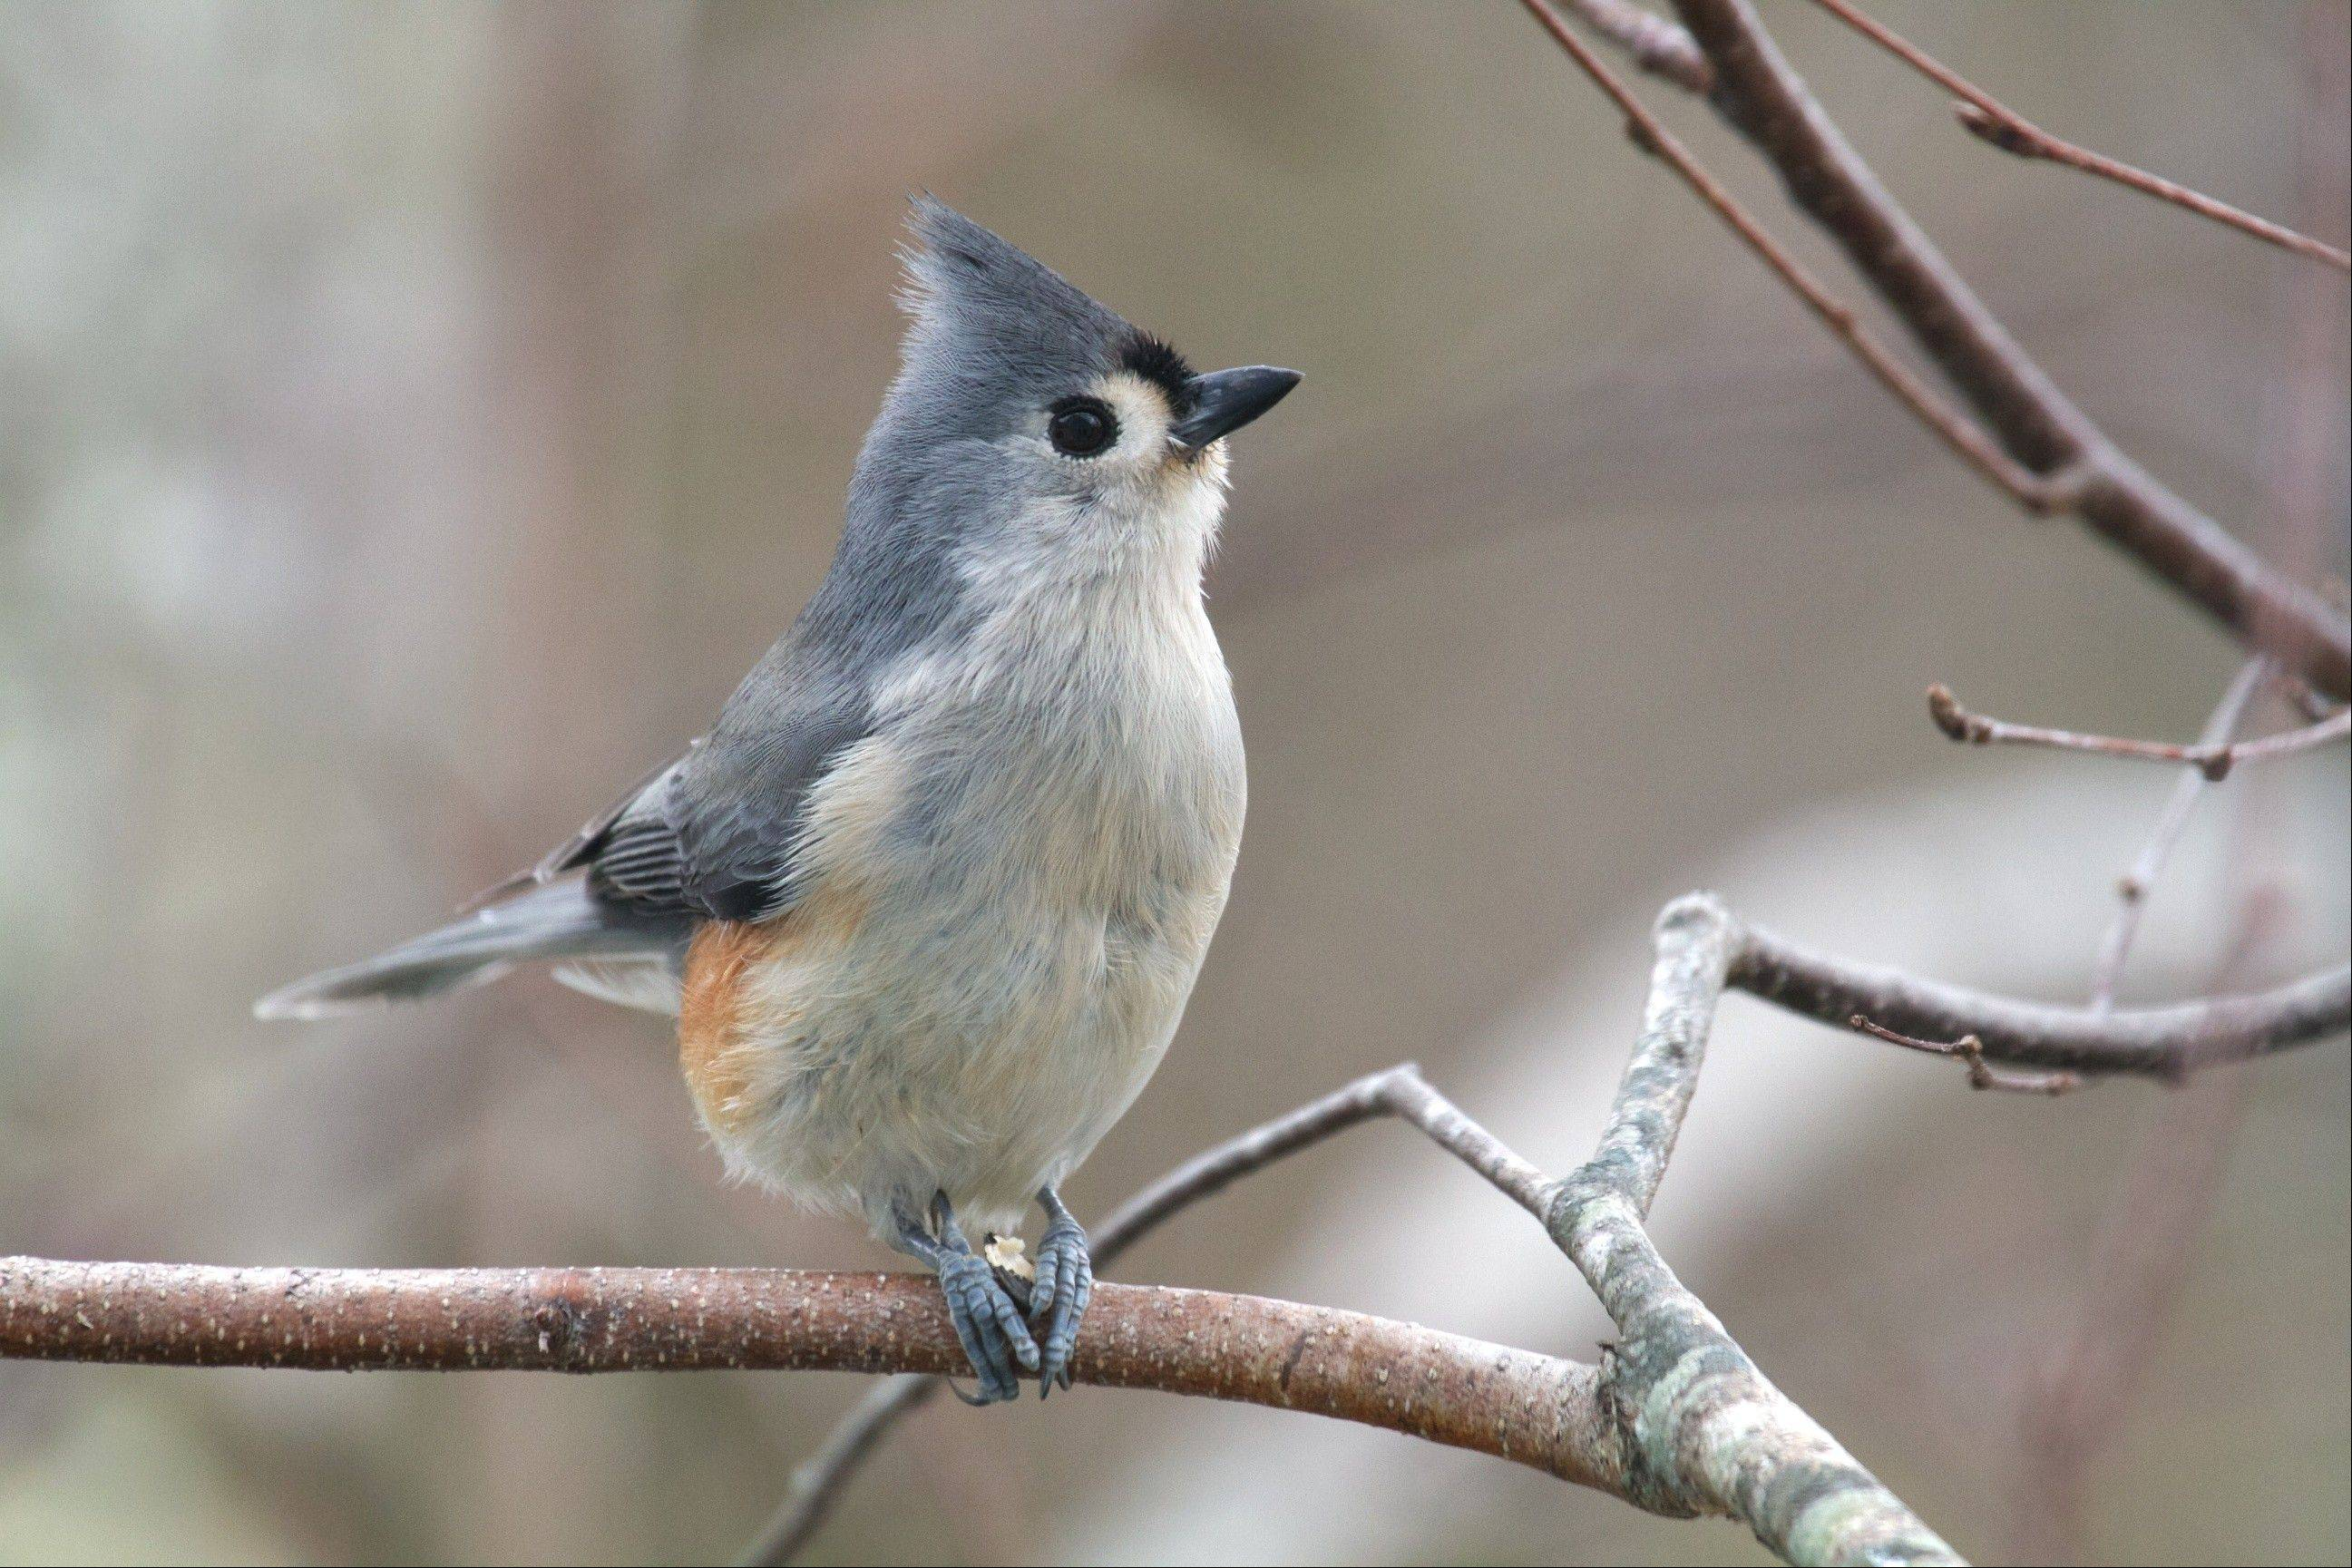 The tufted titmouse has a big-eyed look, black forehead and small crest. As shown in this photo, they hold seeds with their feet and crack them open with the bill.